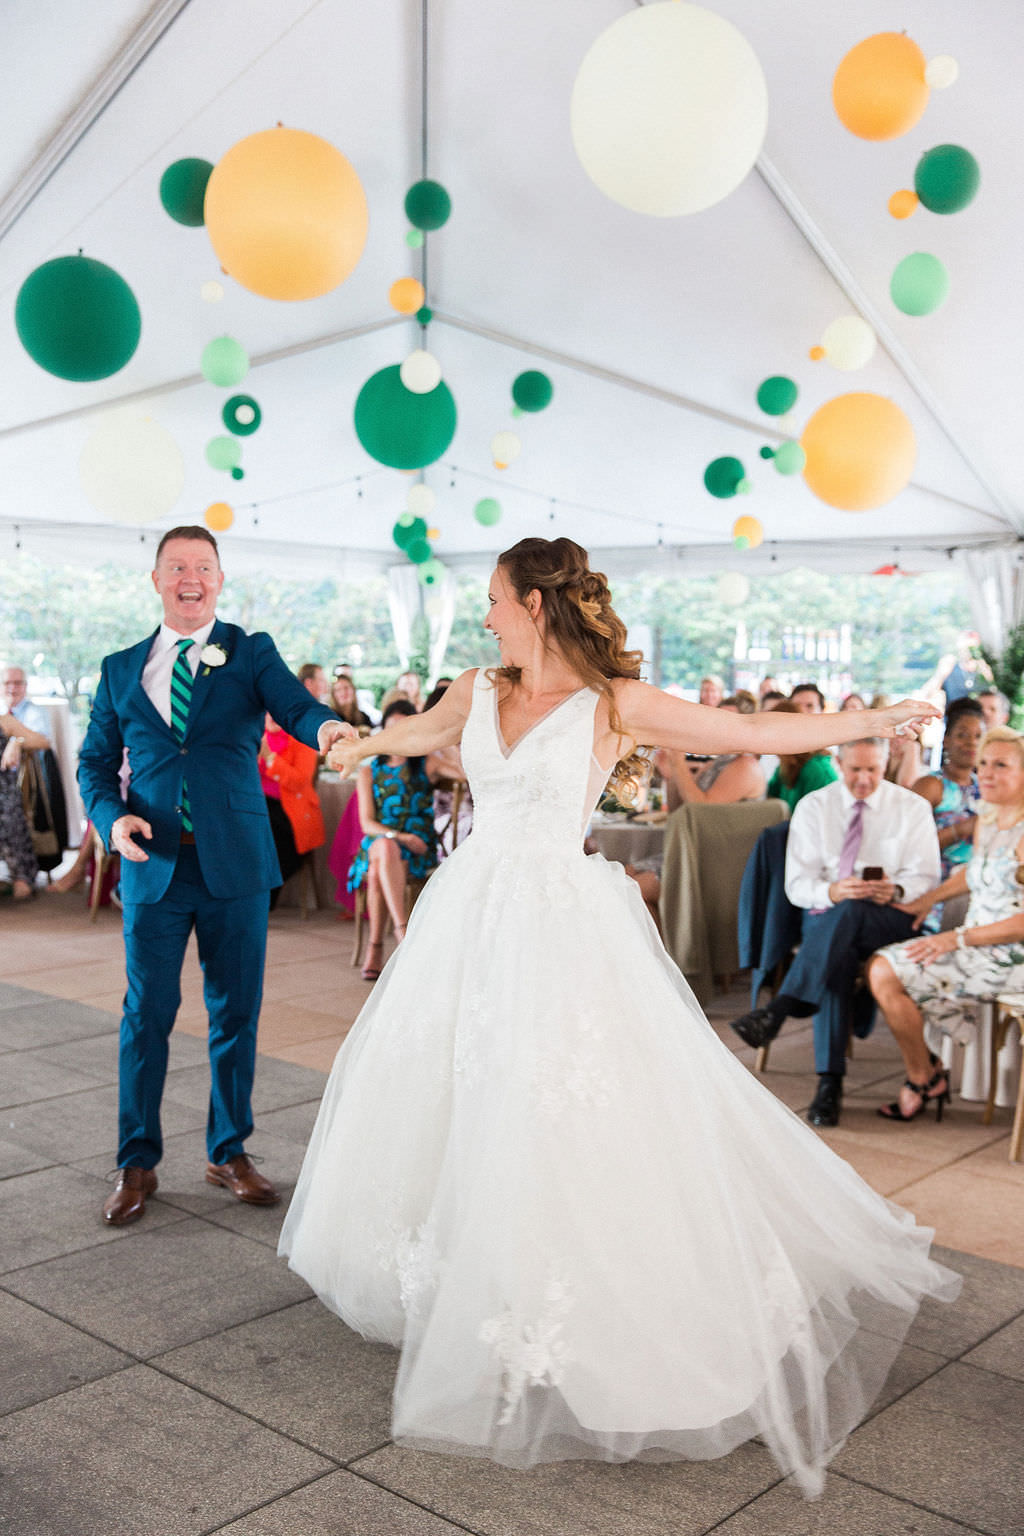 Rustic Elegant Bride and Groom First Dance Wedding Portrait, Whimsical Yellow, Green and White Hanging Balloon Tent Wedding Reception Decor | South Tampa Wedding Venue The Epicurean Hotel | Tampa Wedding DJ Grant Hemond and Associates